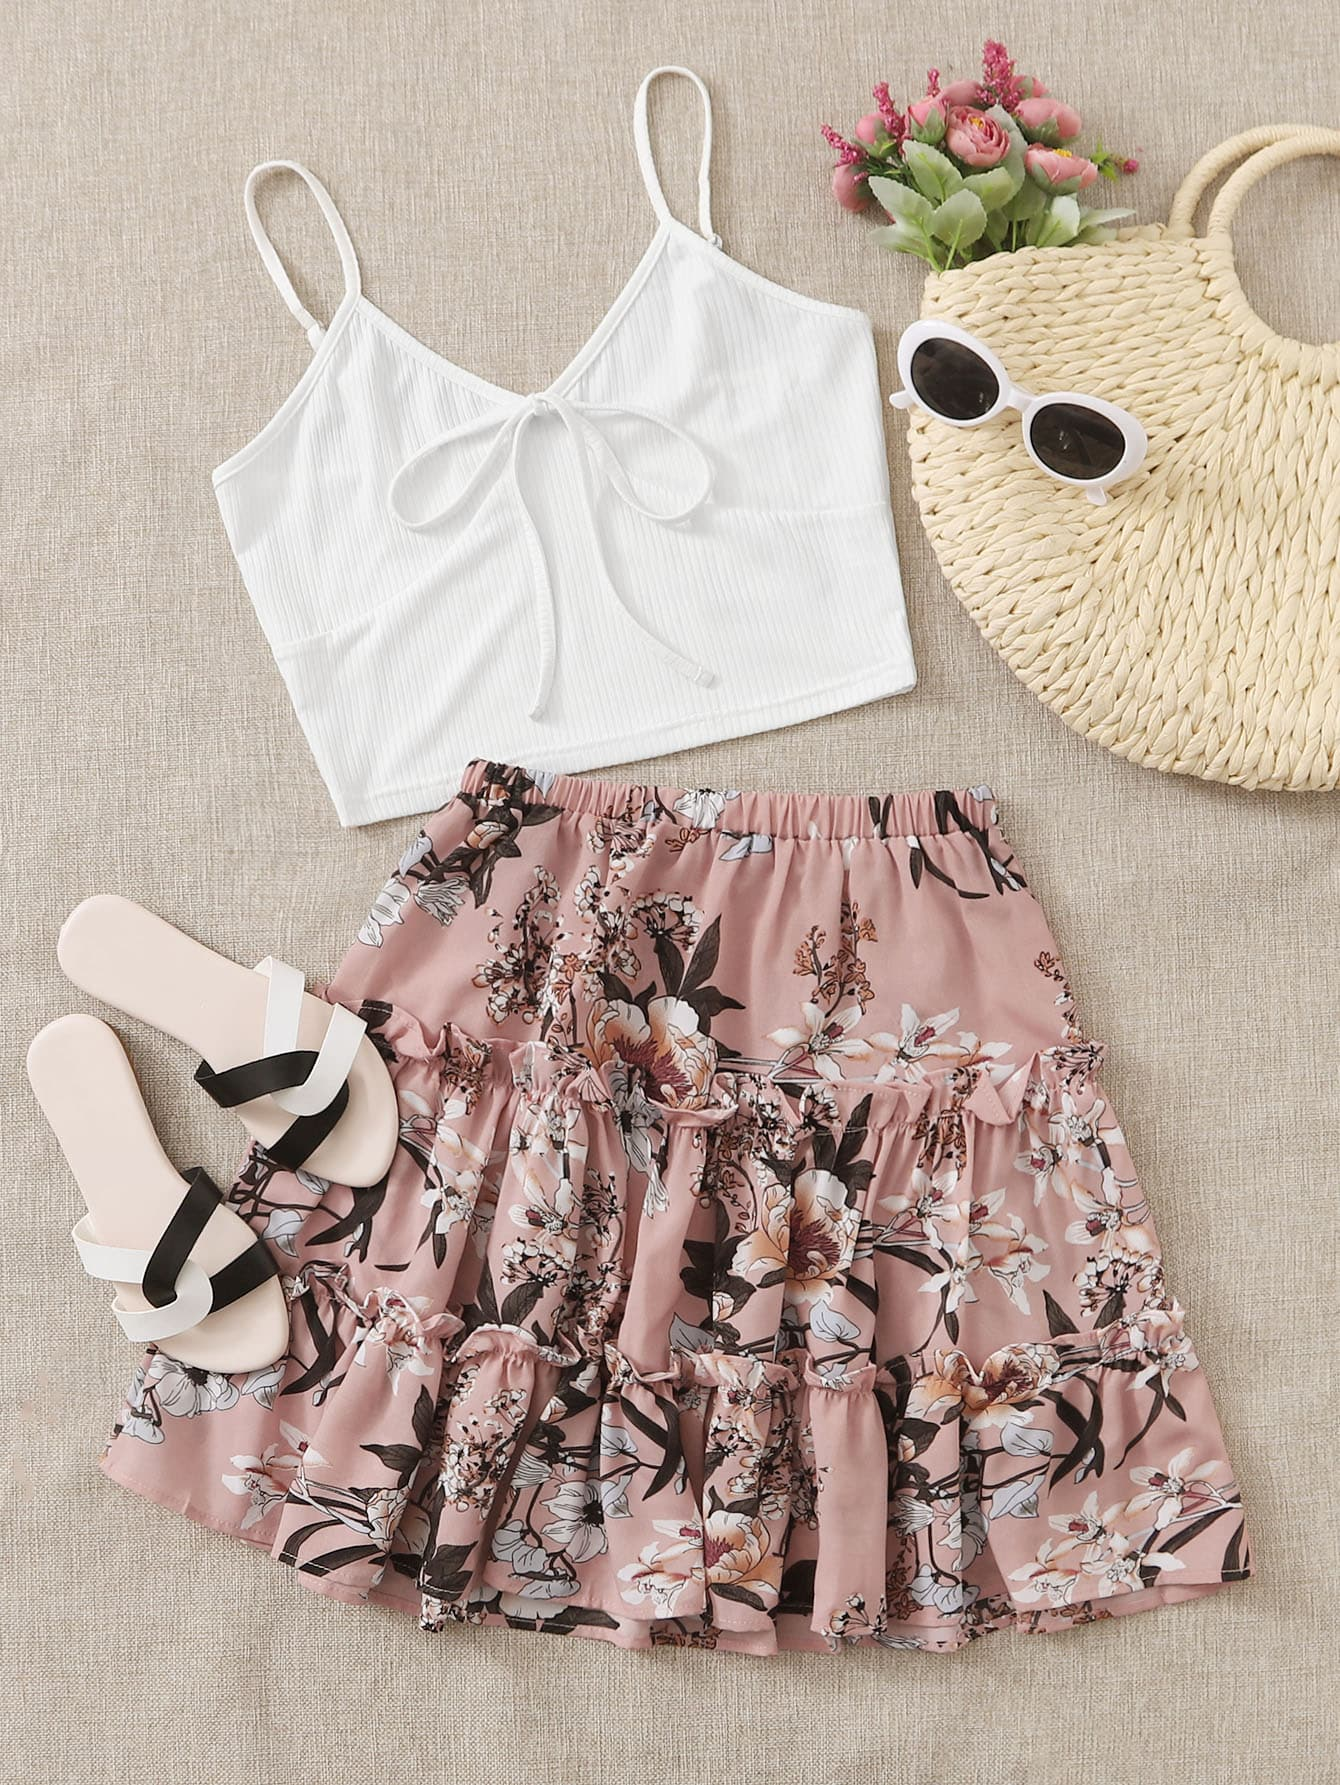 Ribbed Tie Front Cami Top & Floral Frill Trim Shorts - FLJ CORPORATIONS